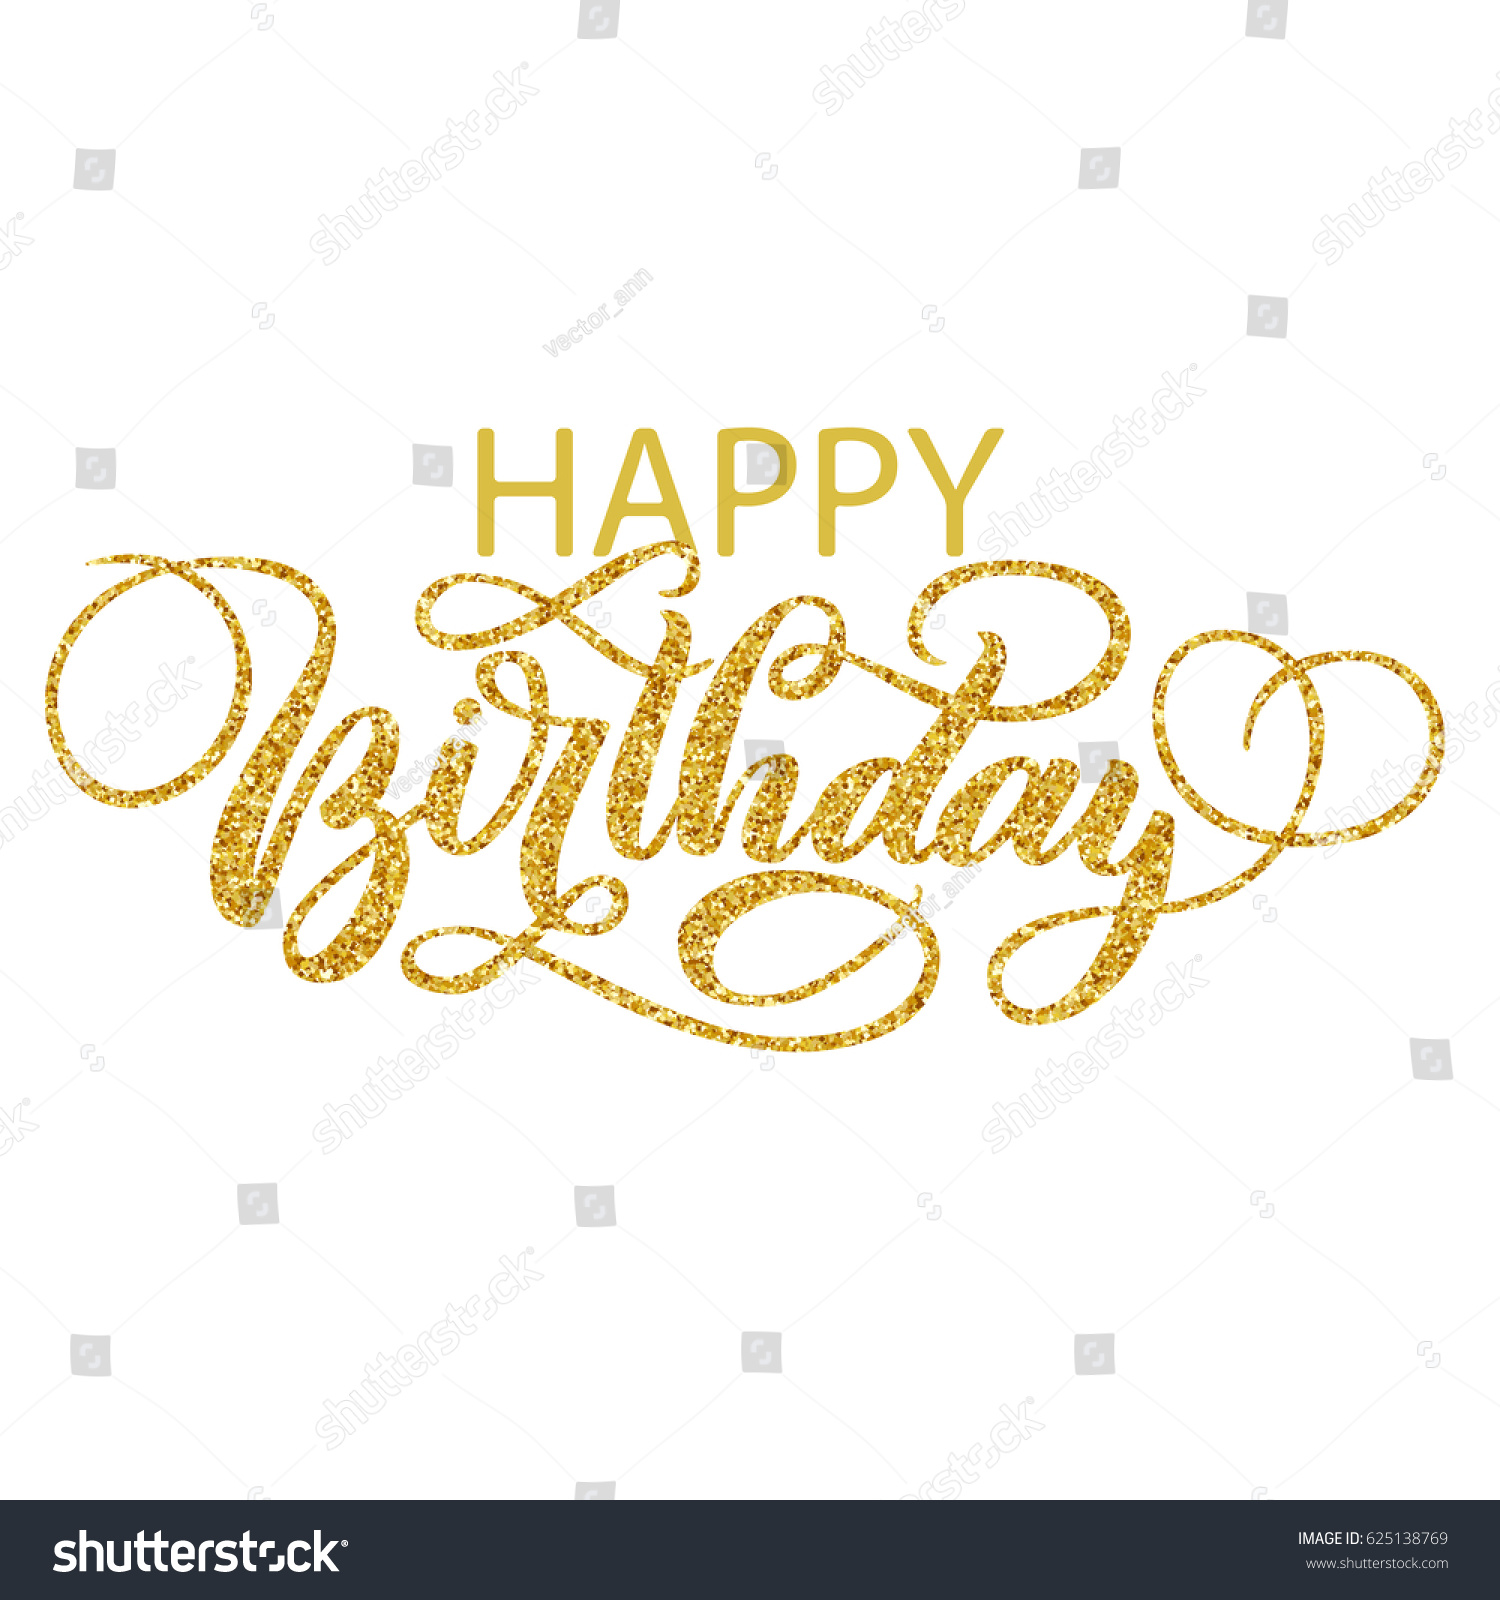 happy birthday fancy ; stock-vector-happy-birthday-hand-lettering-with-golden-glitter-effect-fancy-calligraphy-isolated-on-white-625138769